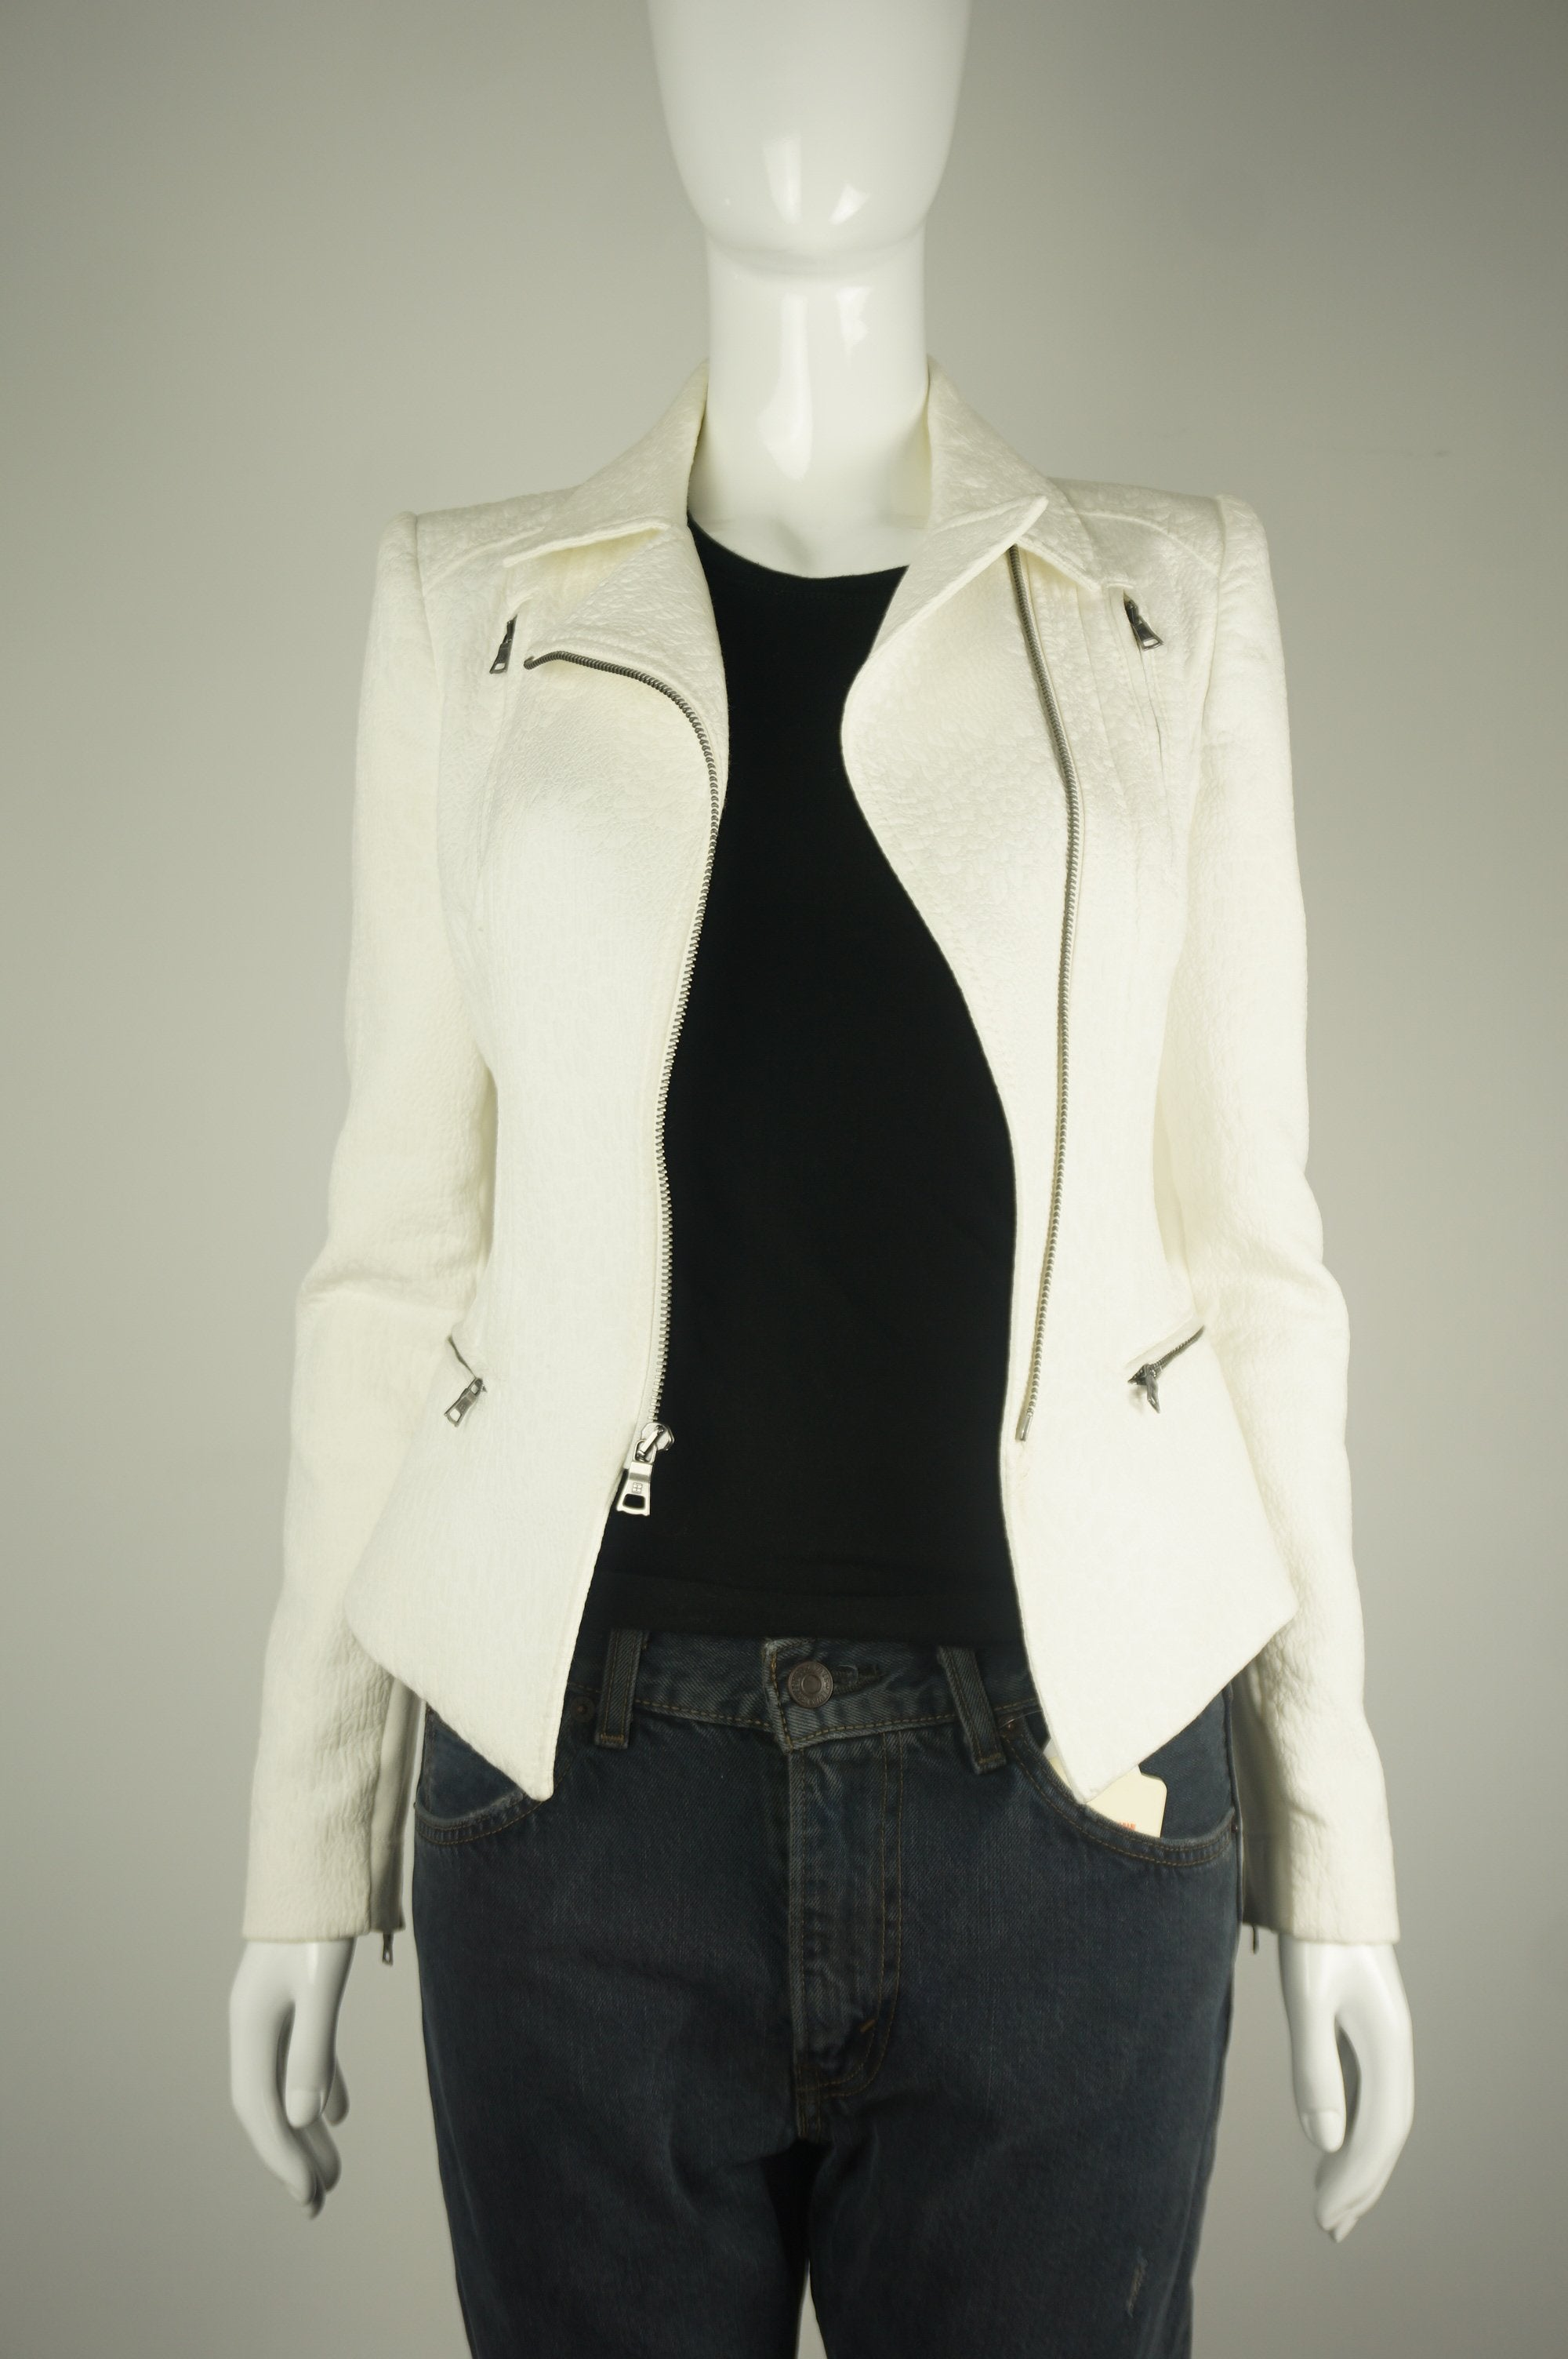 BCBG MAXAZRIA White Blazer, Super flattering chic blazer with zipped front but also looks great open. , White, Shell: 62% cotton, 28% polyester., women's Jackets & Coats, women's White Jackets & Coats, BCBG MAXAZRIA women's Jackets & Coats, BCBG MAXAZRIA women's peplum blazer, women's professional stylish leather blazer, women's business jacket, women's fashionable professional blazer, women's fashionable white leather moto jacket